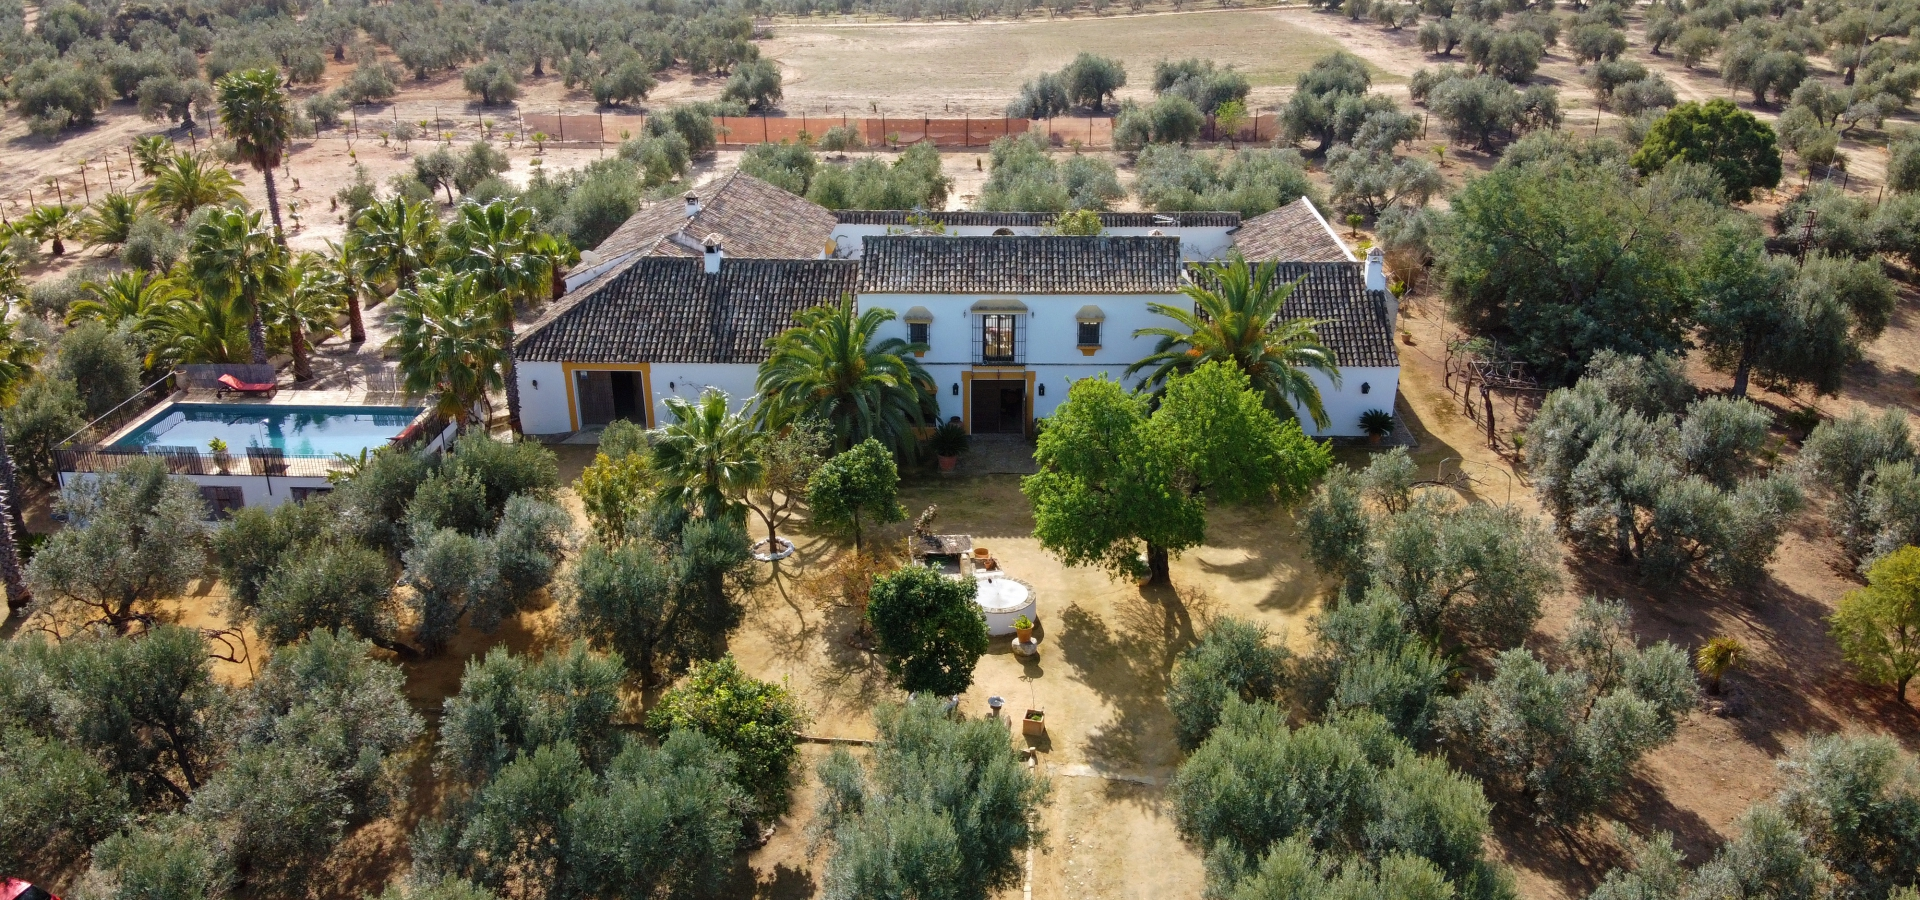 8.87Ha country house  for sale in  Campiña de Morón y Marchena, Sevilla